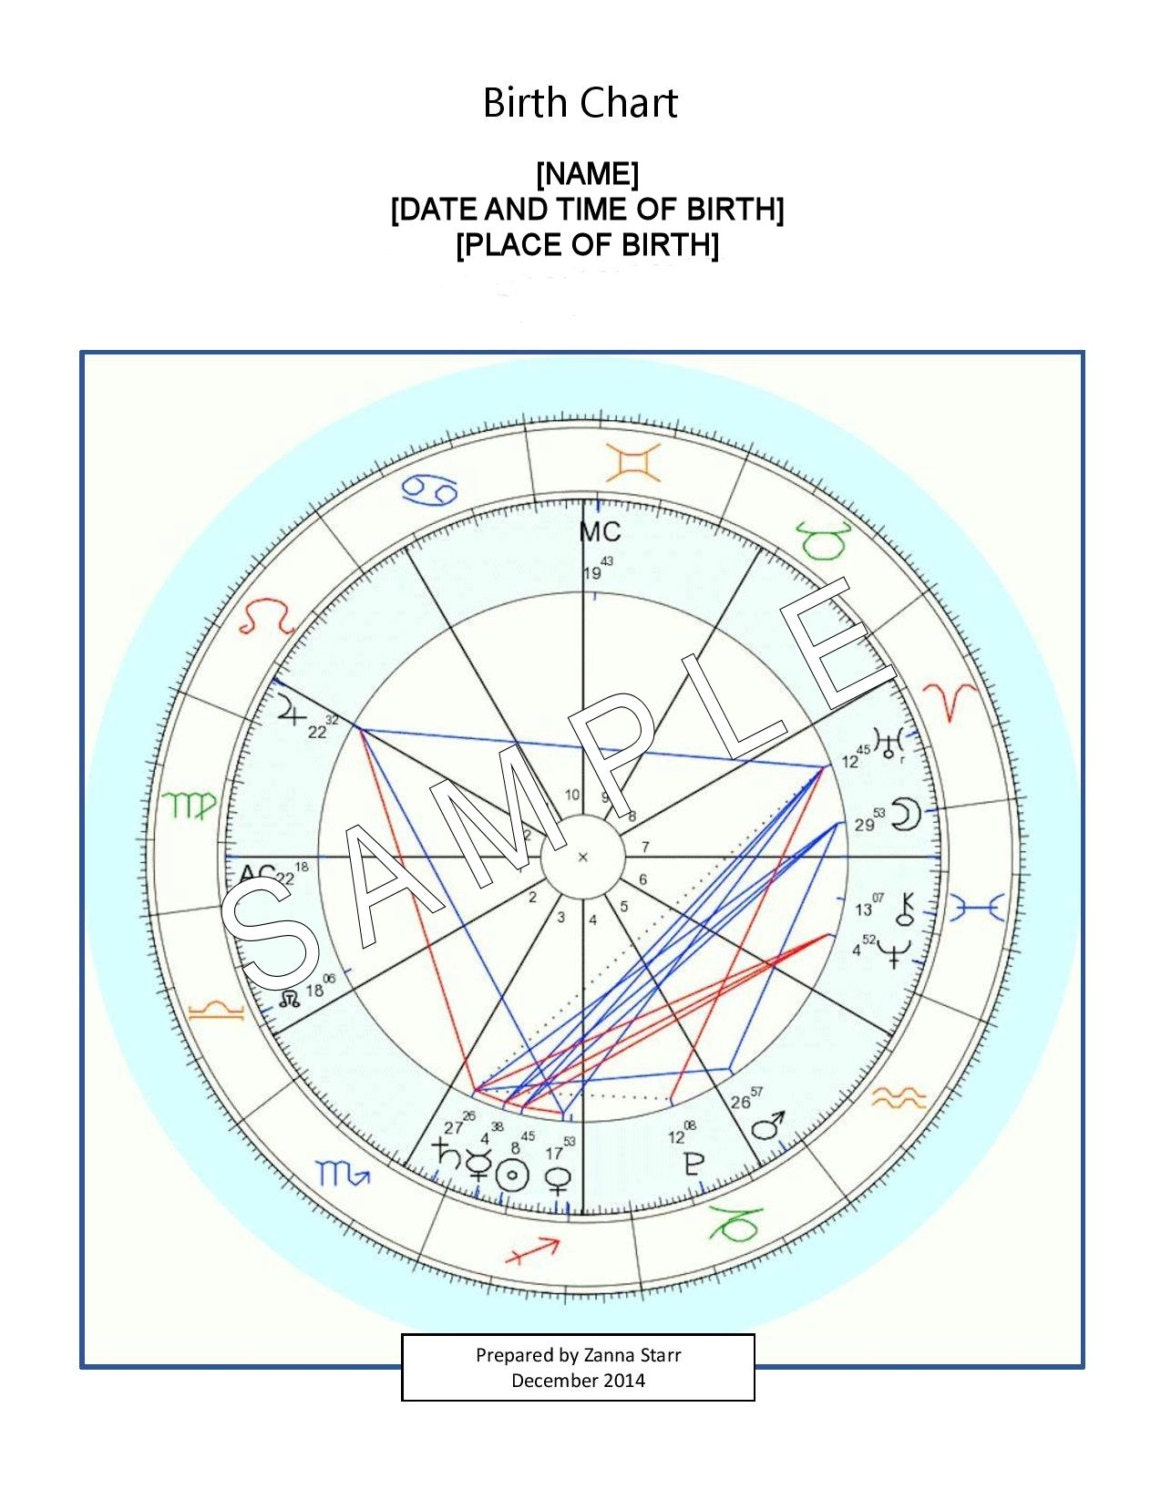 Astrological birth chart with sun sign moon sign rising description astrological birth chart nvjuhfo Gallery